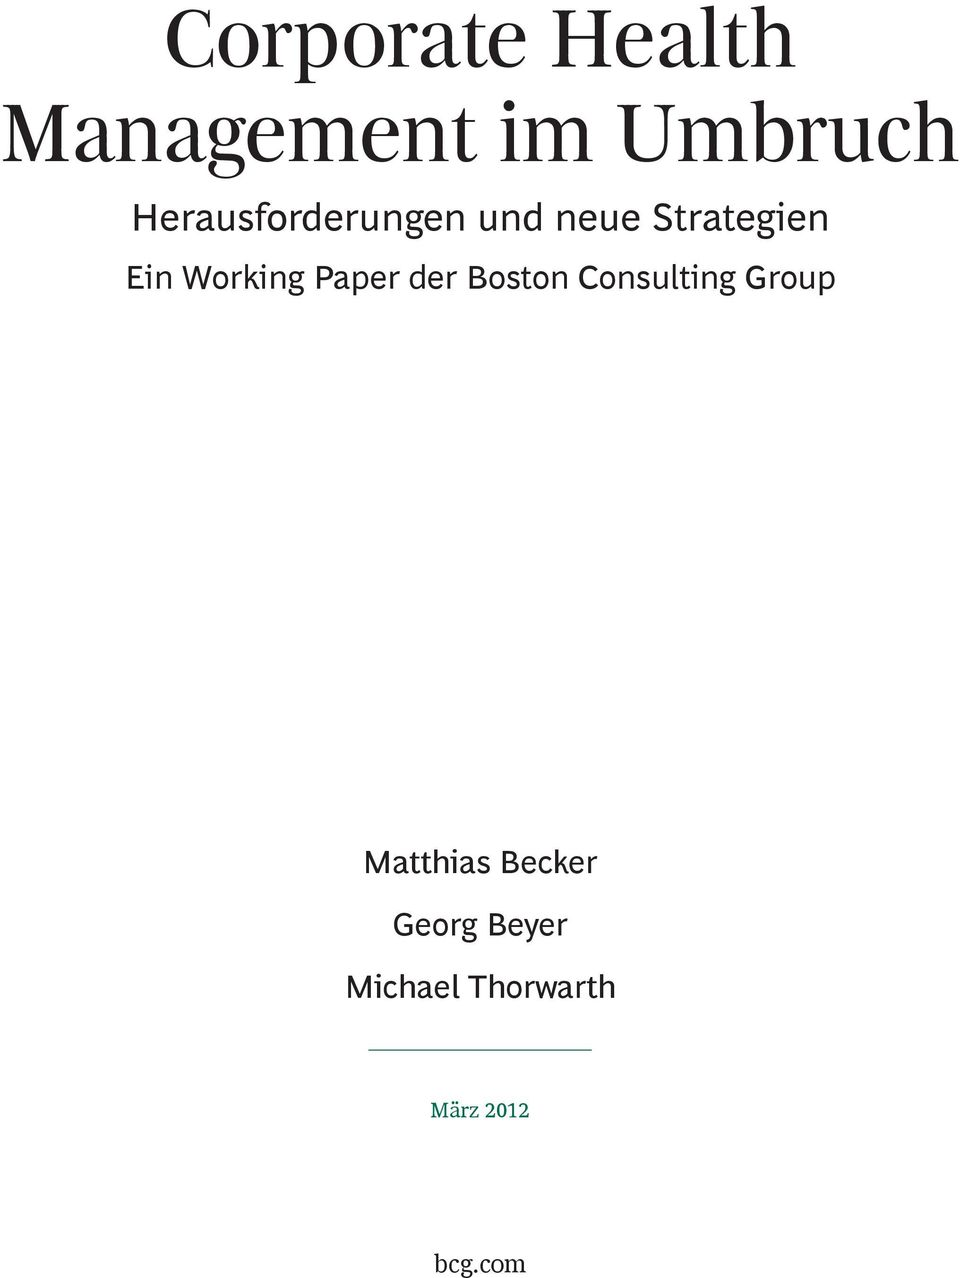 Working Paper der Boston Consulting Group